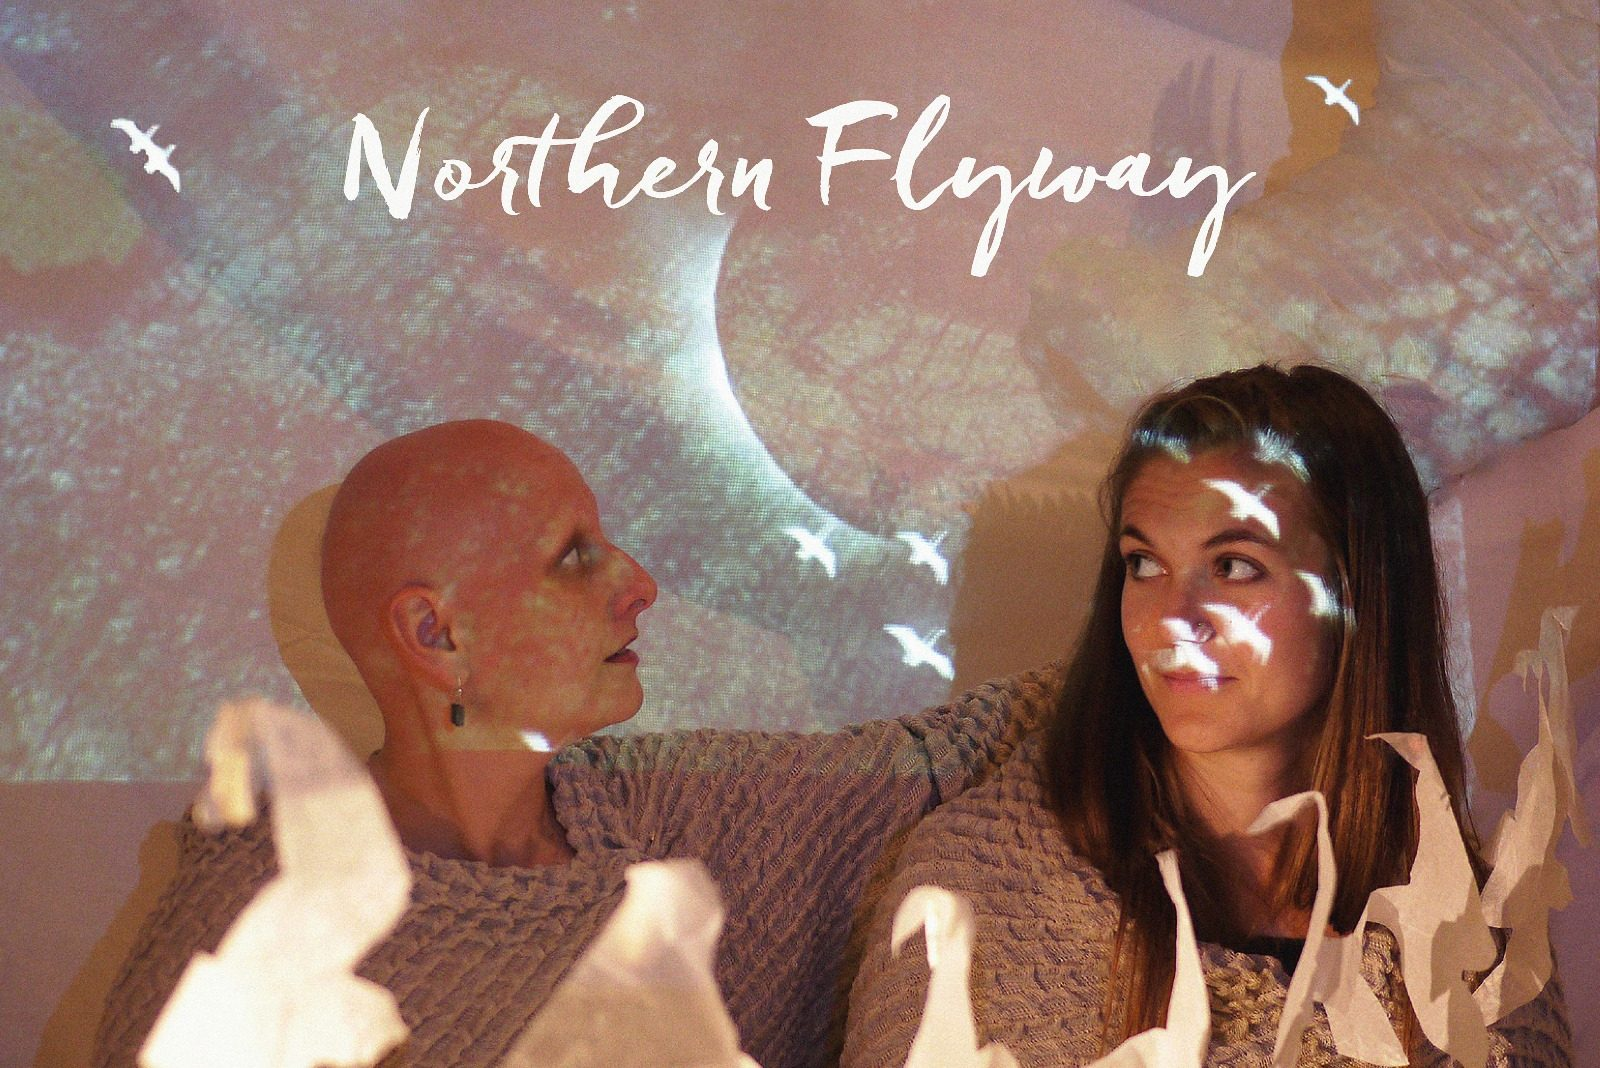 Northern Flyway – an audio-visual production exploring the ecology, folklore, symbolism and mythology of birds and birdsong.